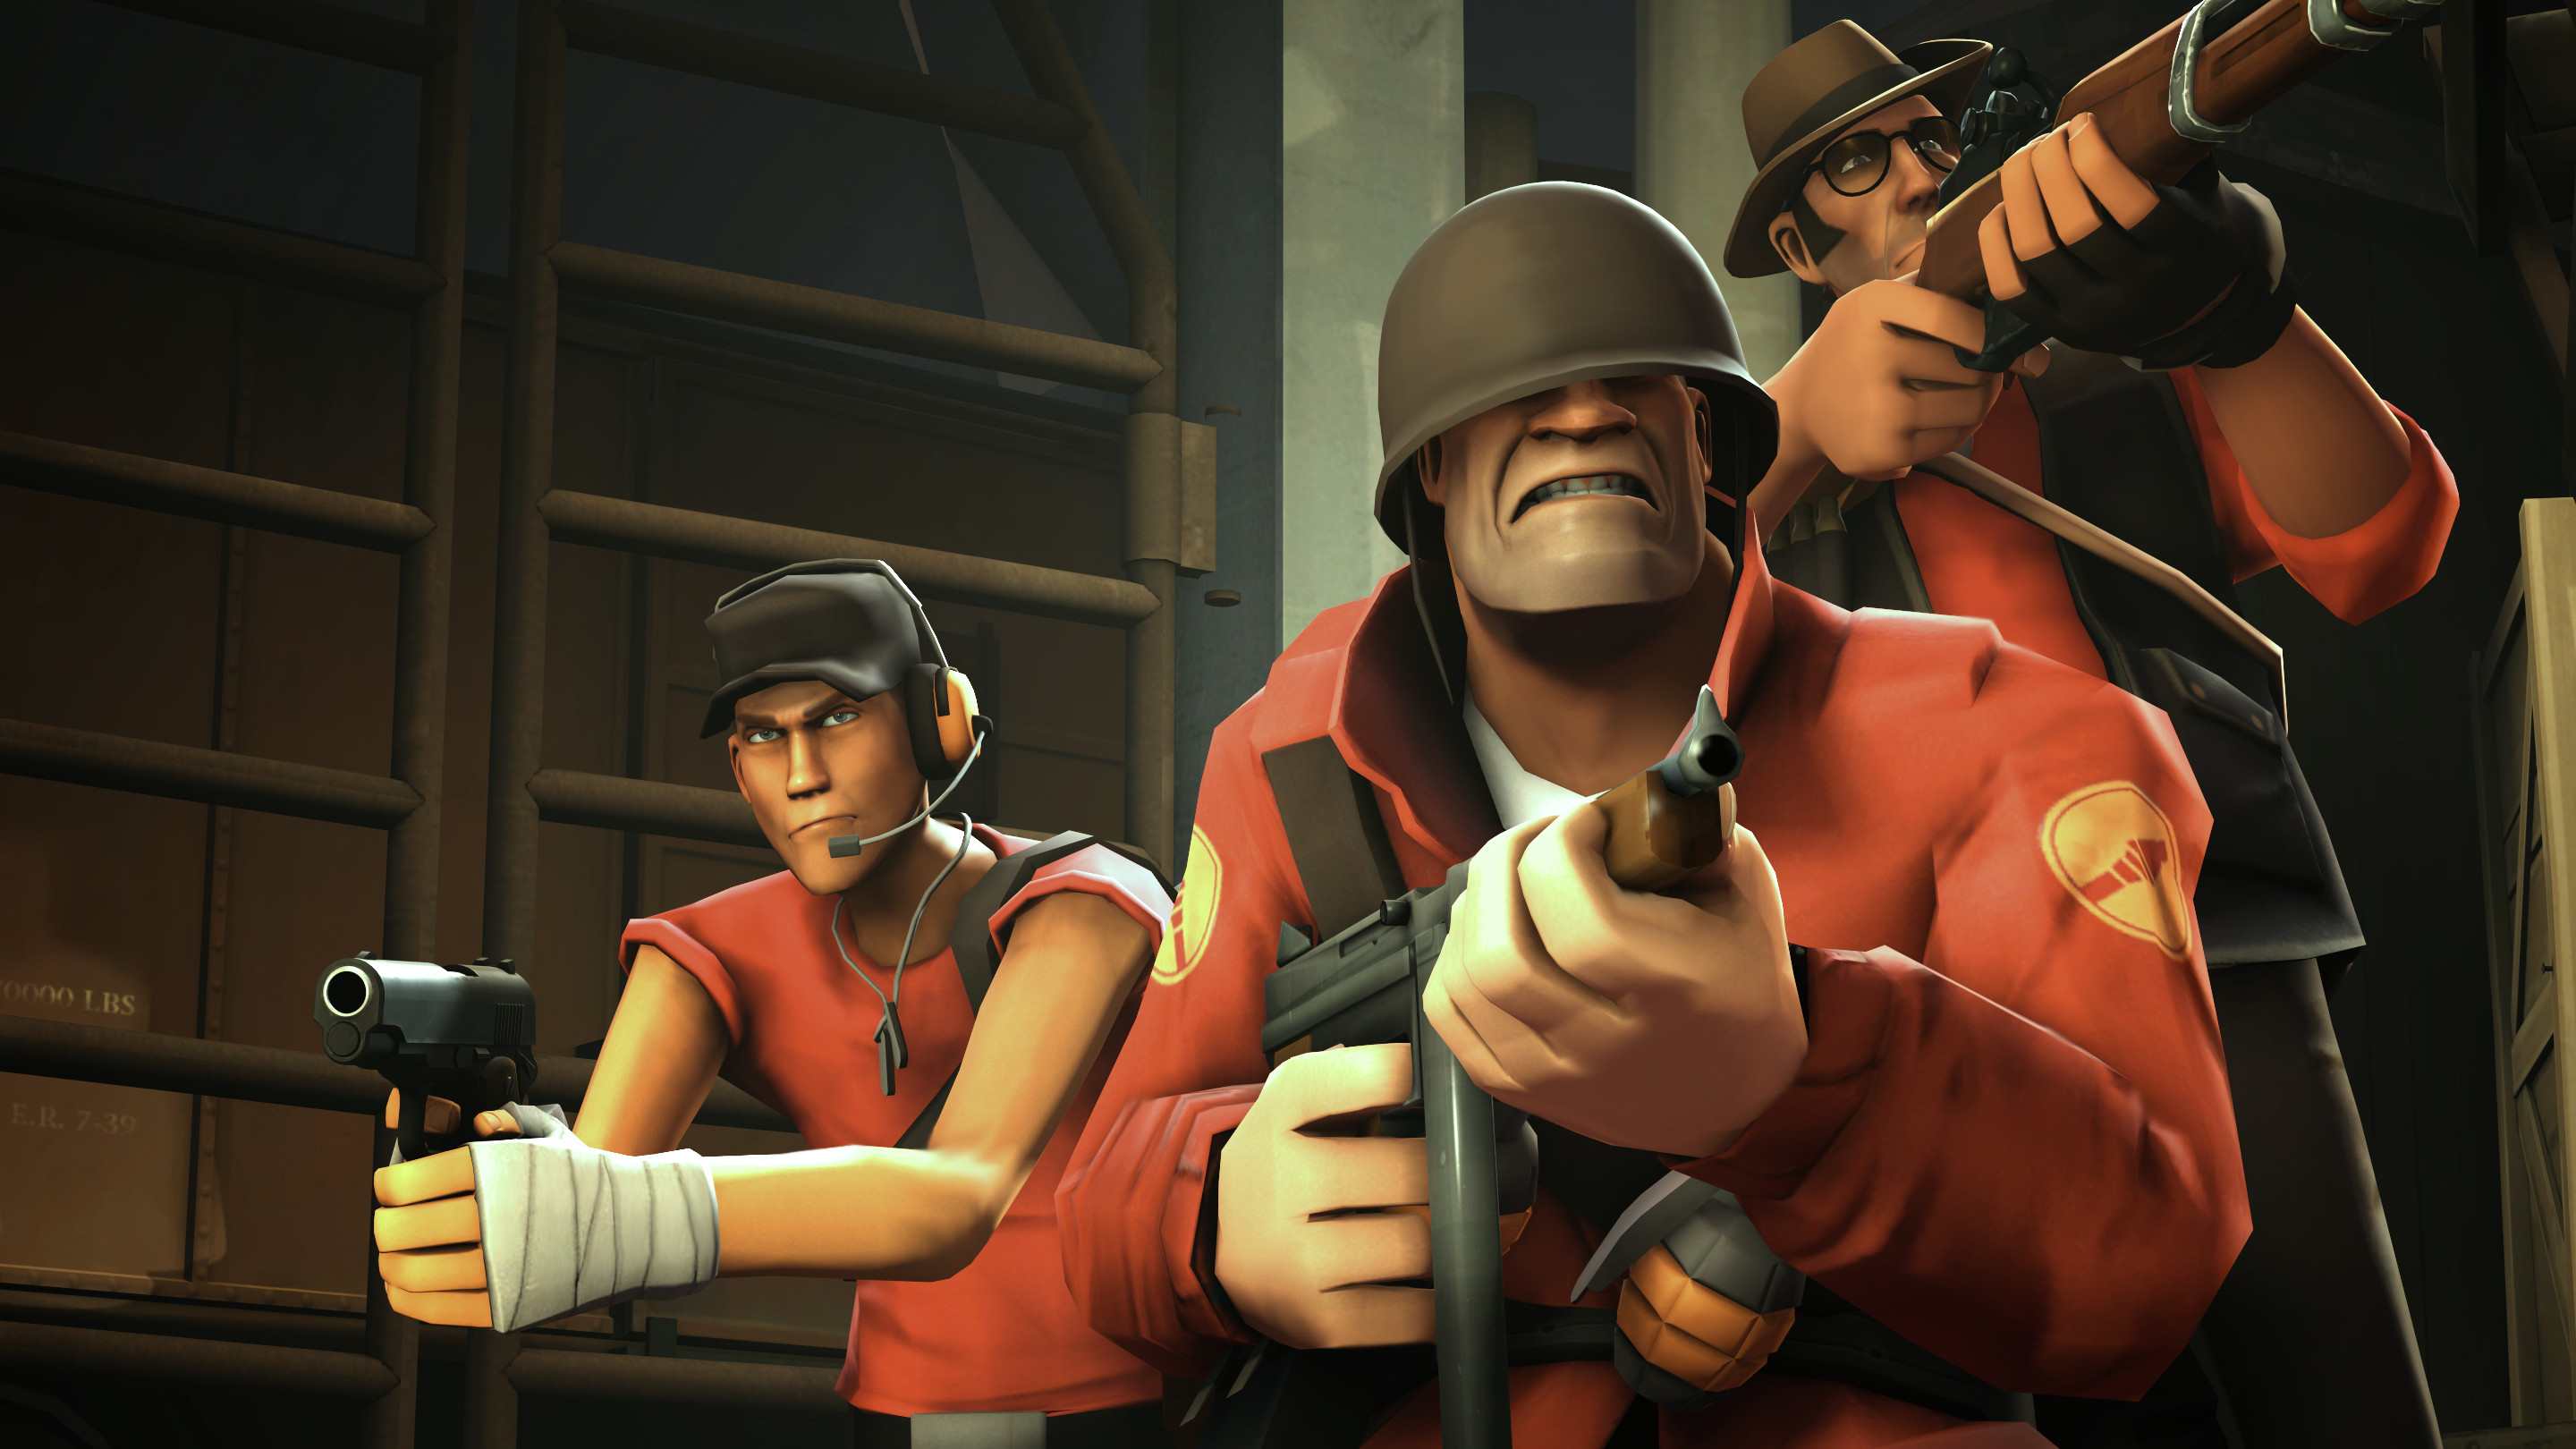 Tf2 Sfm Wallpapers (85+ images)